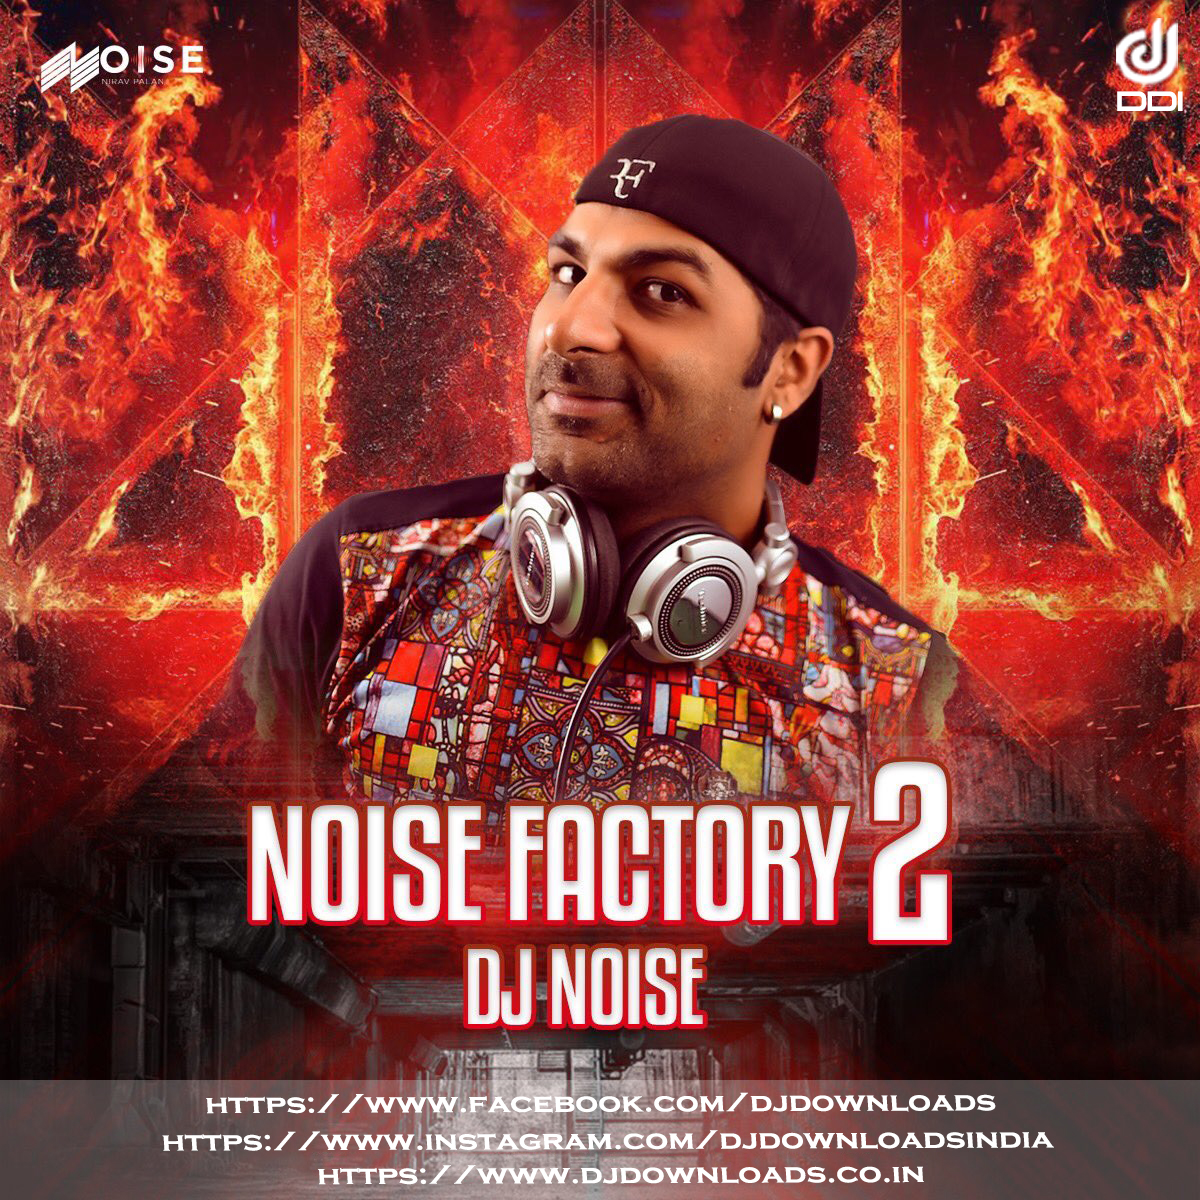 Noise Factory 2, Dj Noise, DJ Noise Album, Noise Factory, Dj Noise Noise Factory, Bollywood Remix, Bollywood Album, Bollywood Remix Album